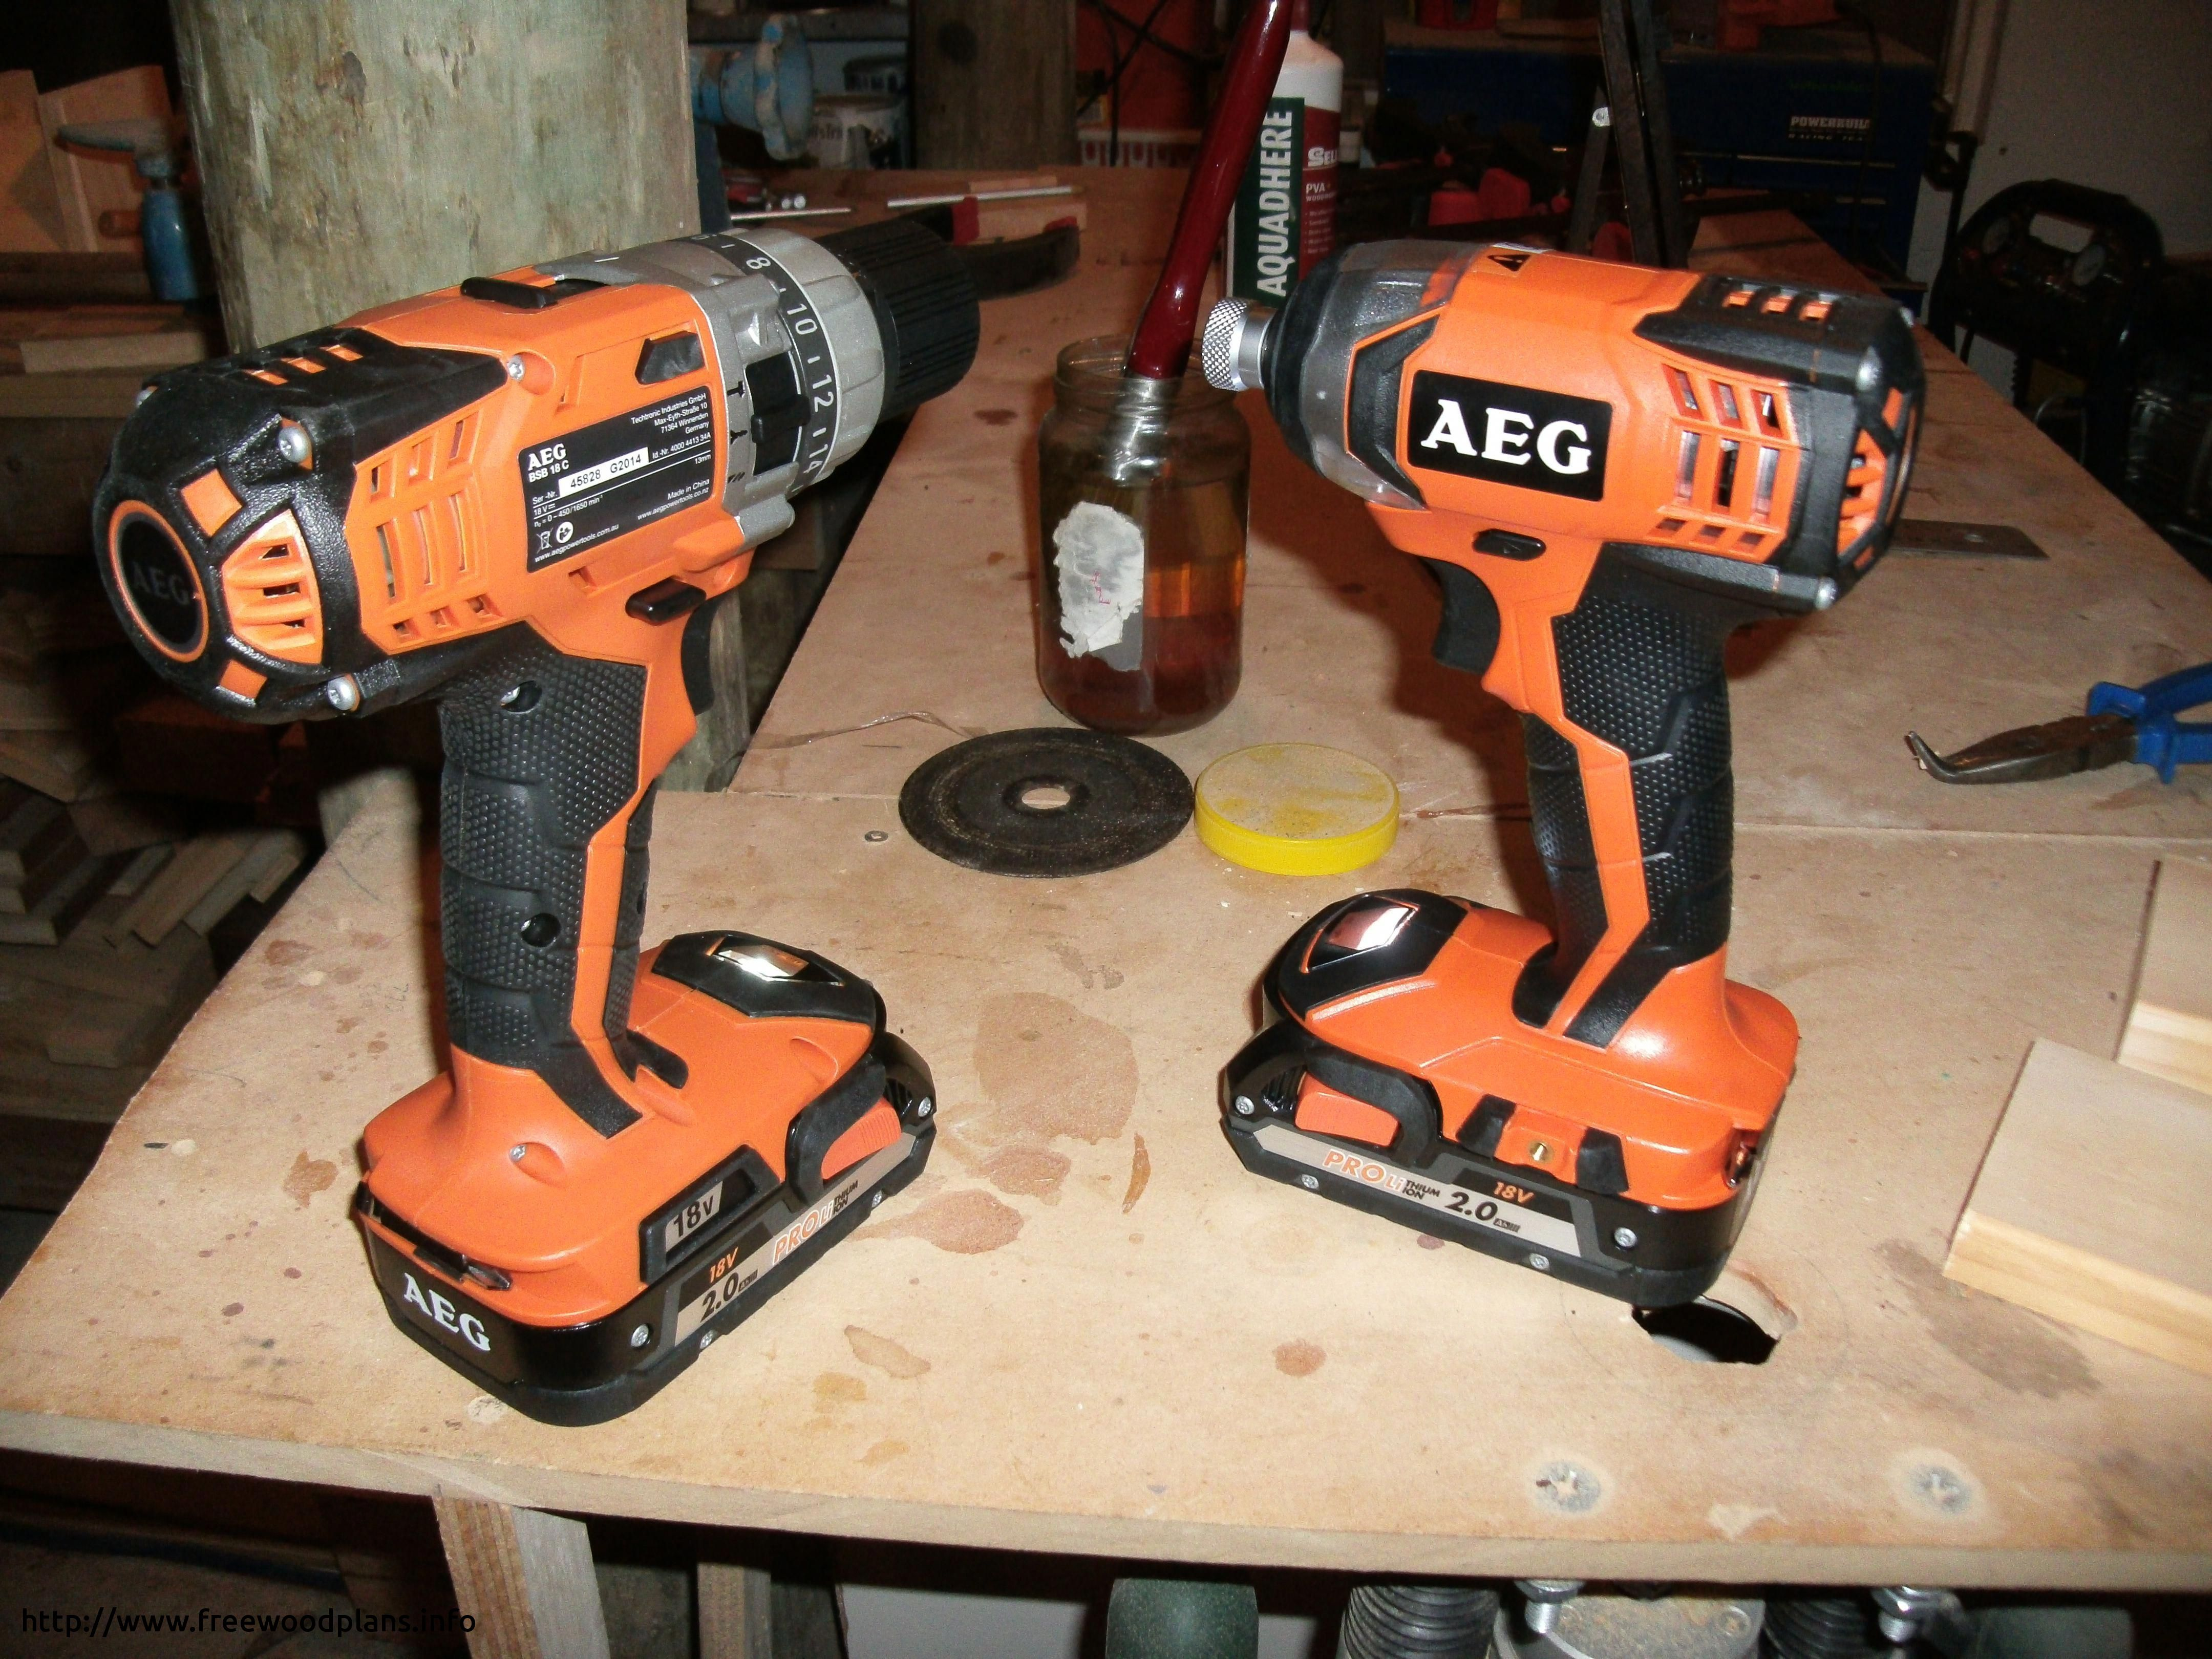 50 Woodworking Projects Without Power Tools 2018 Free